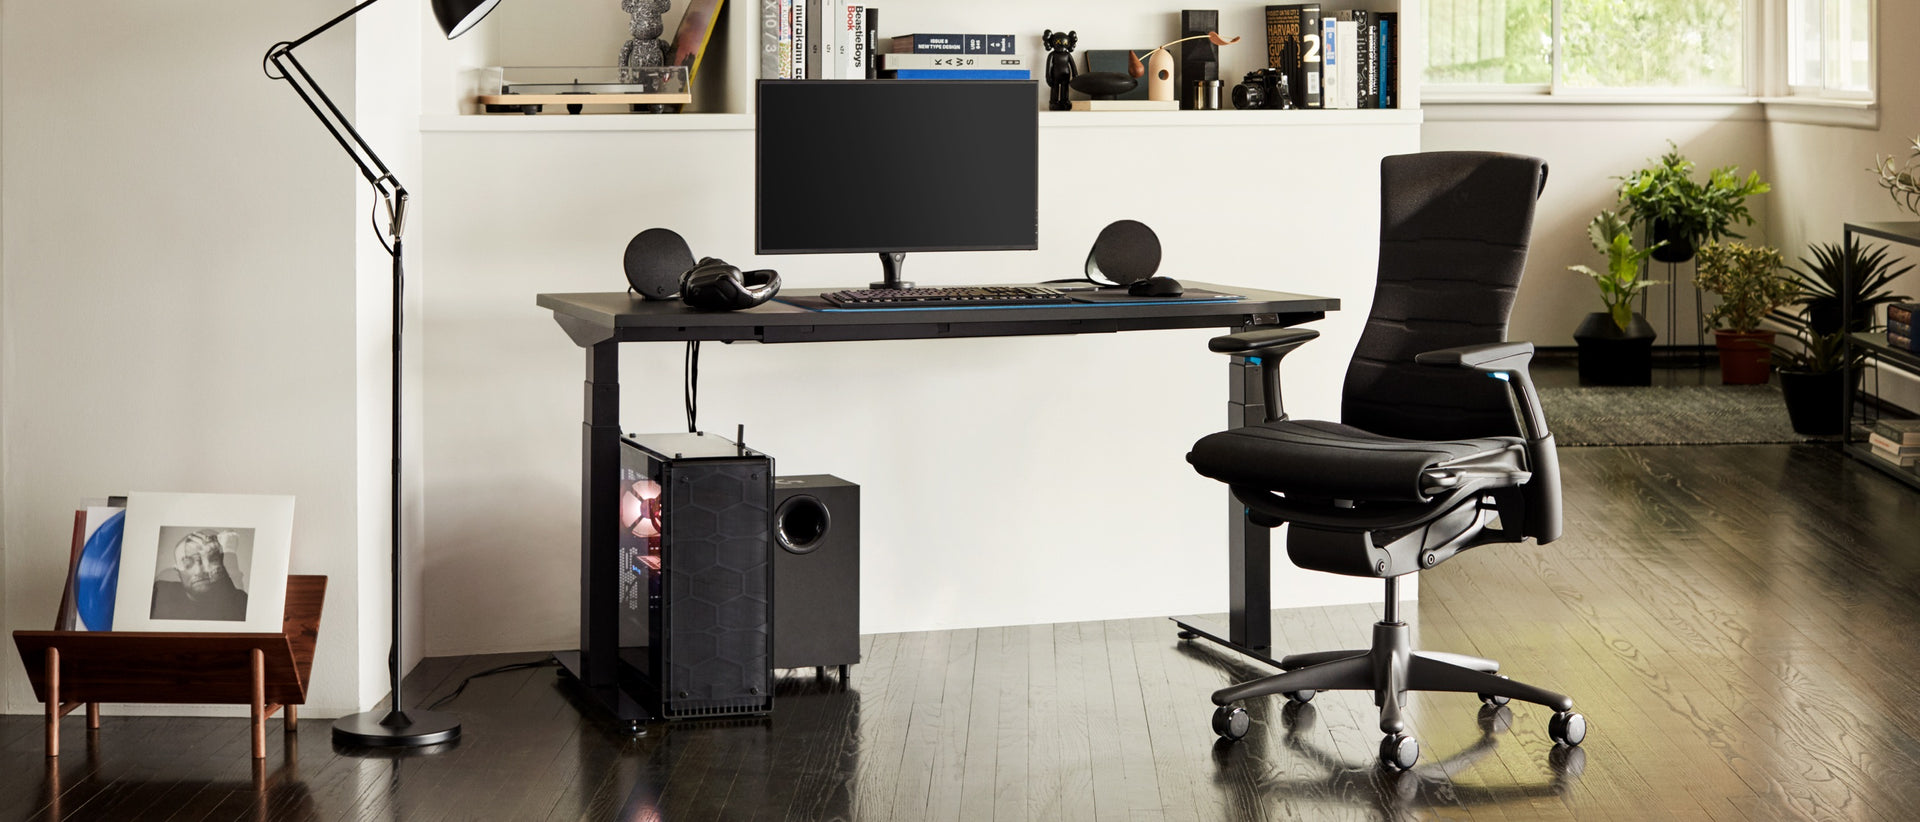 A residential setting features the full set-up, including the Embody Gaming Chair, Ollin Monitor Arm and Motia Gaming Desk, in the daytime.